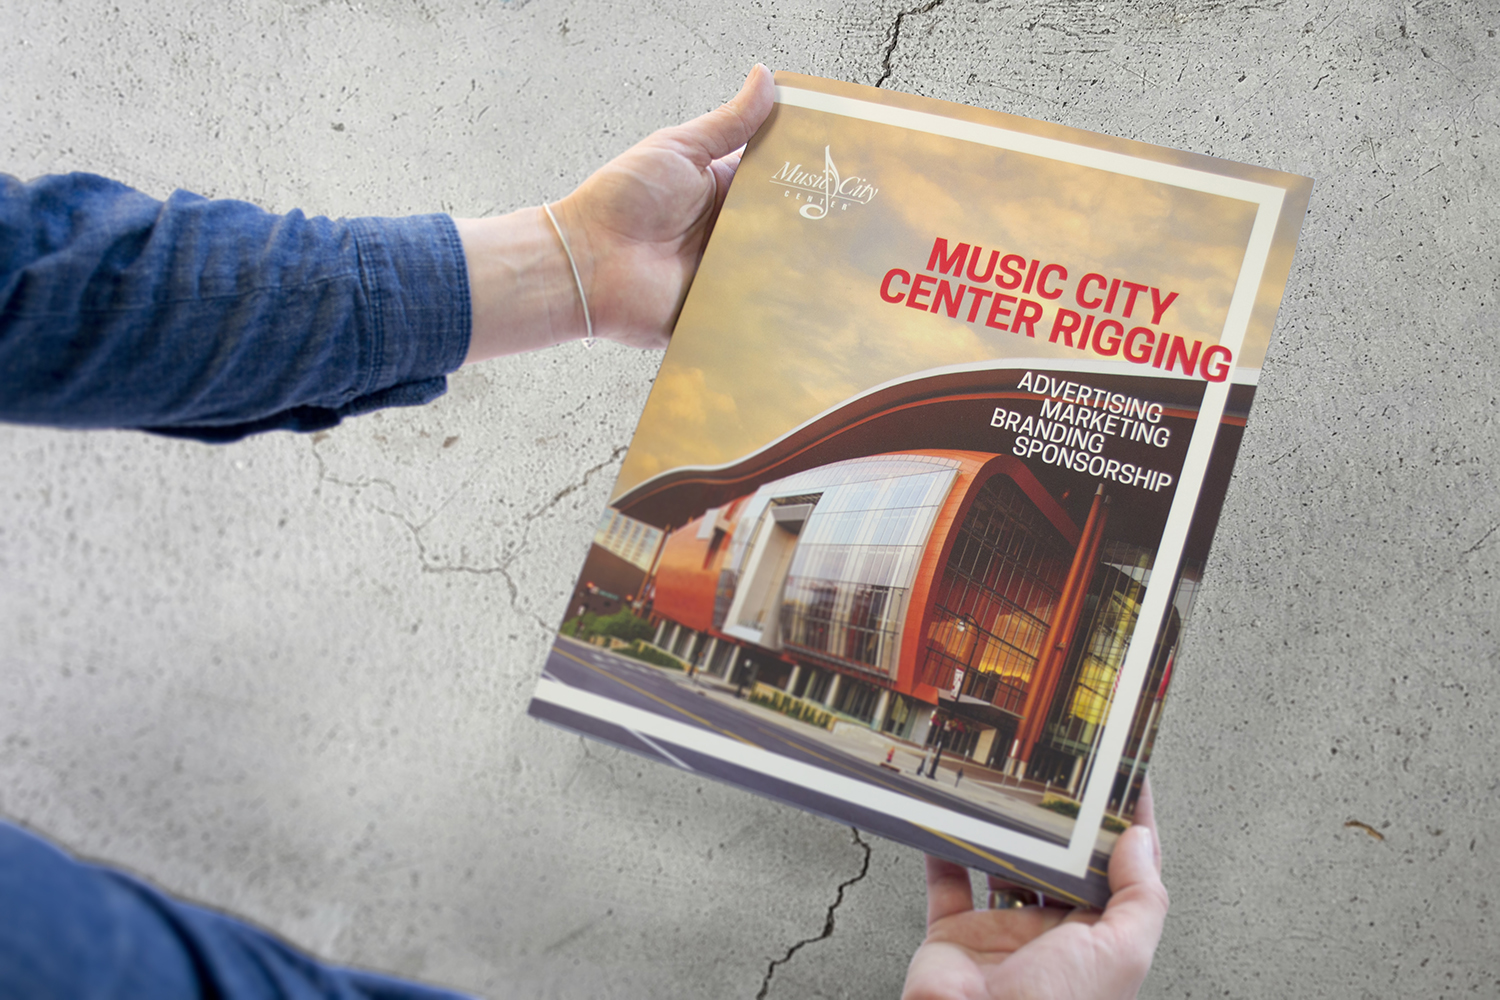 music-city-center-collateral-1.jpg